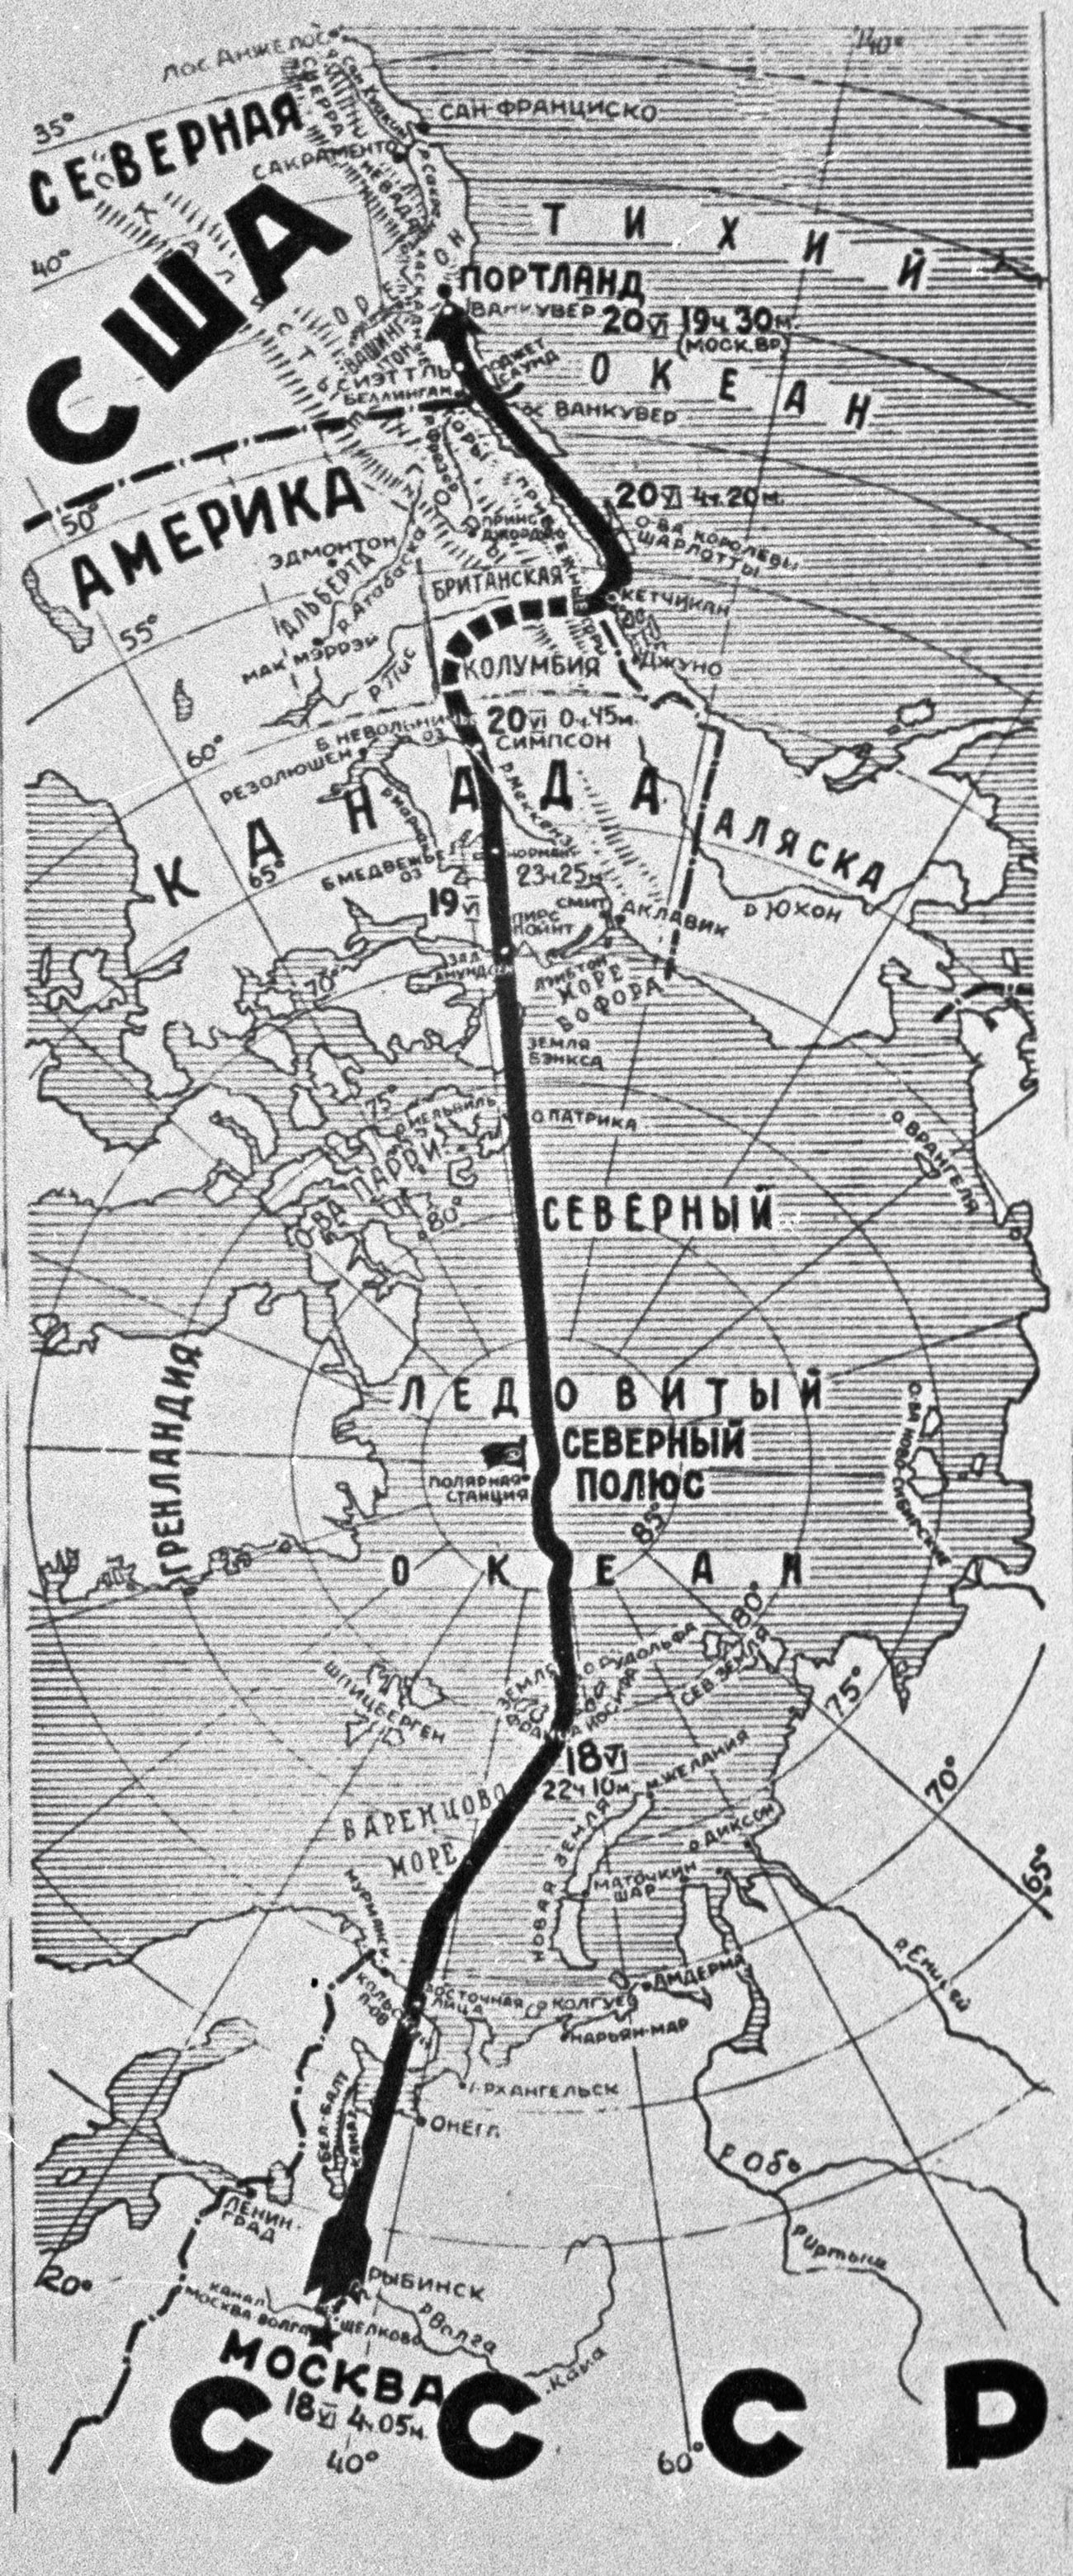 Chkalov flew a plane from Moscow to Vancouver, Washington in the U.S. via the North Pole.